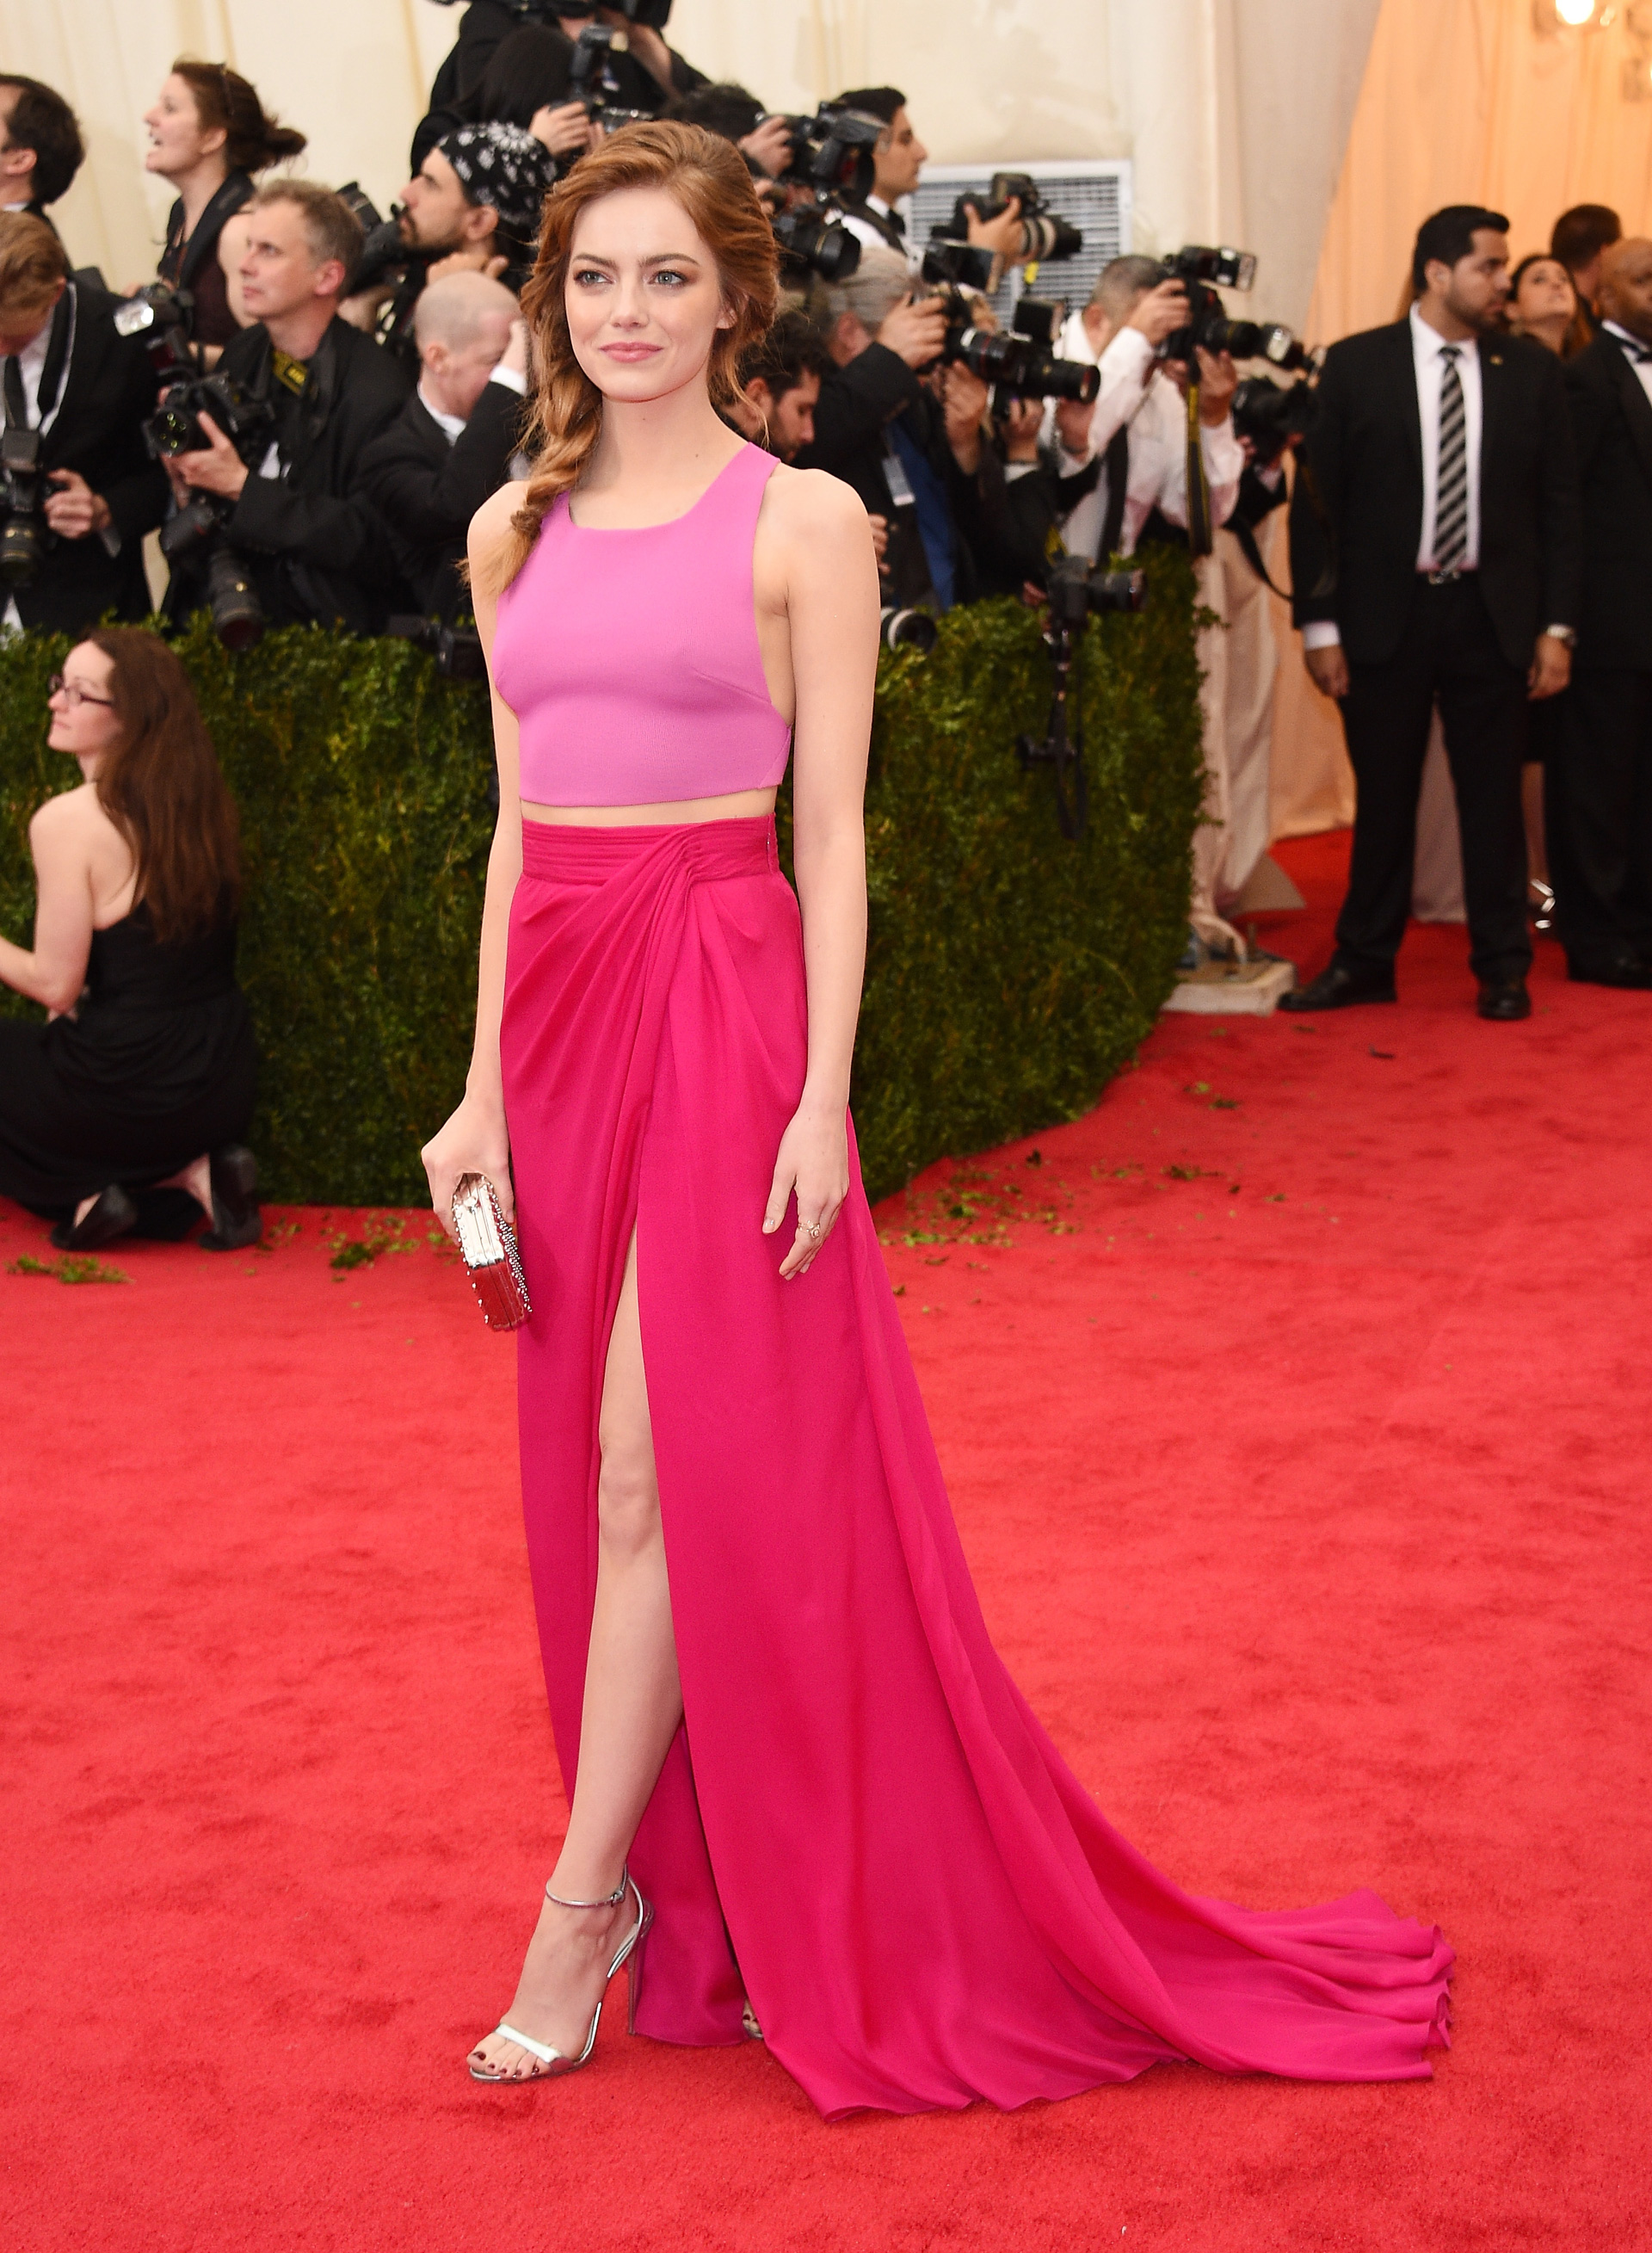 Emma Stone at the 2014 Met Gala